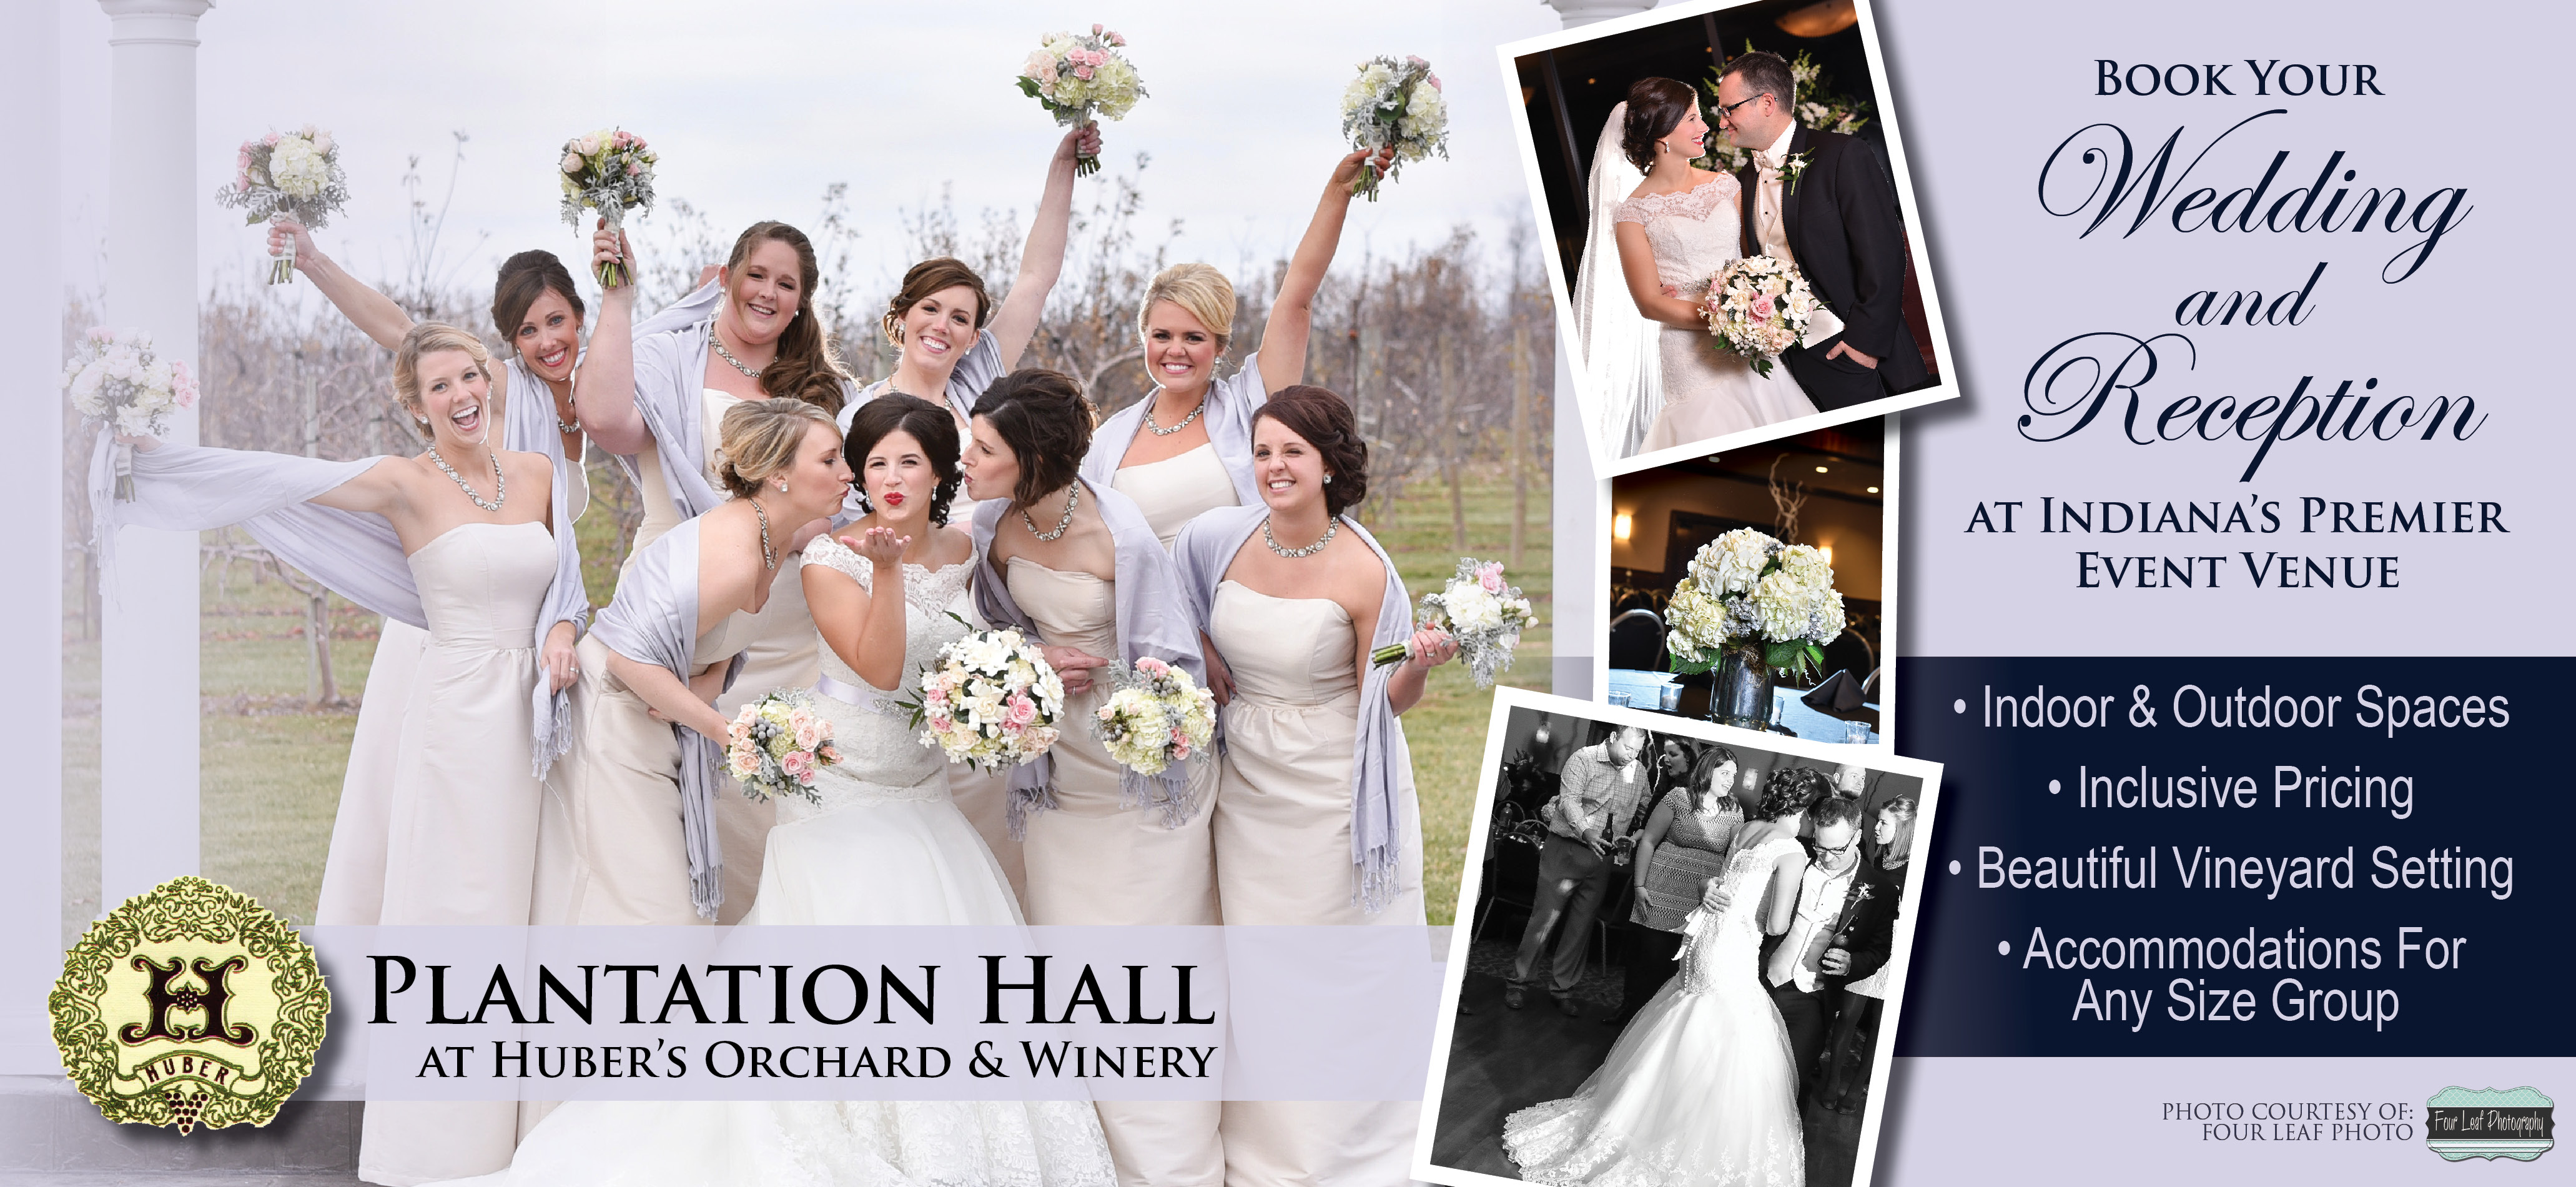 PlantationHall2015_web